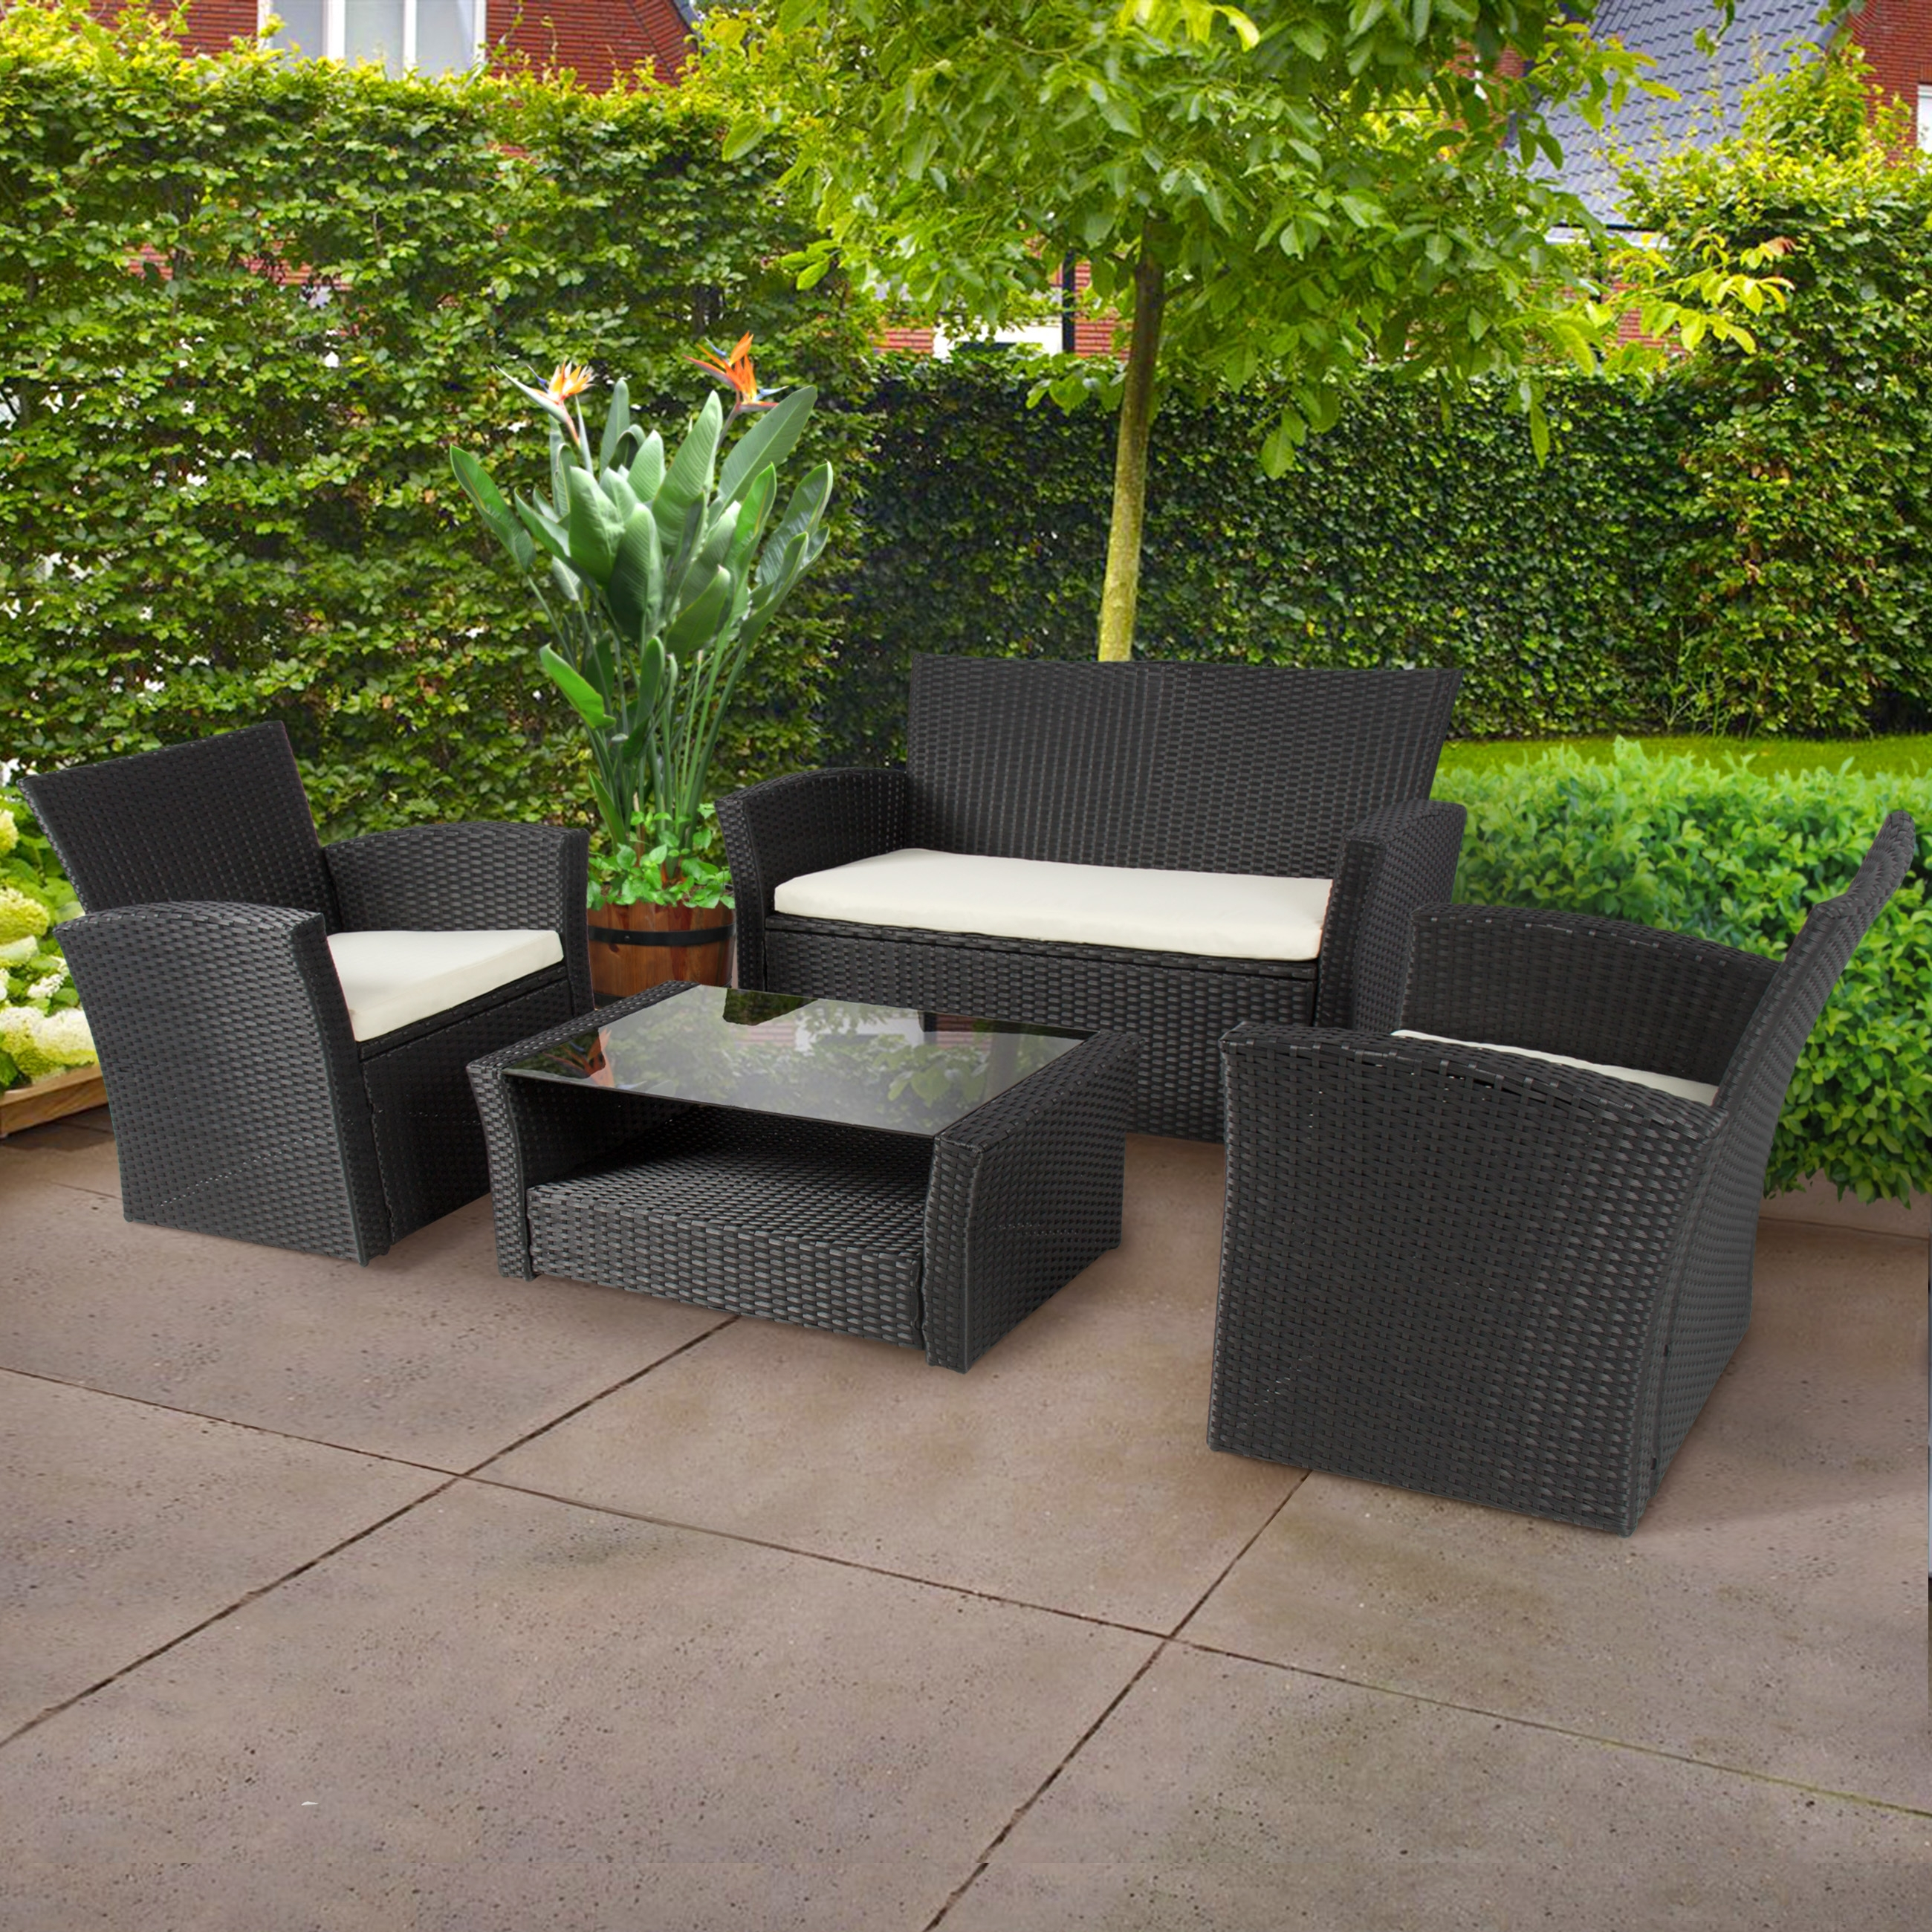 Fashionable Patio : Resin Picnic Table Small Patio With Umbrella Hole Furniture Intended For Black Patio Conversation Sets (View 8 of 20)